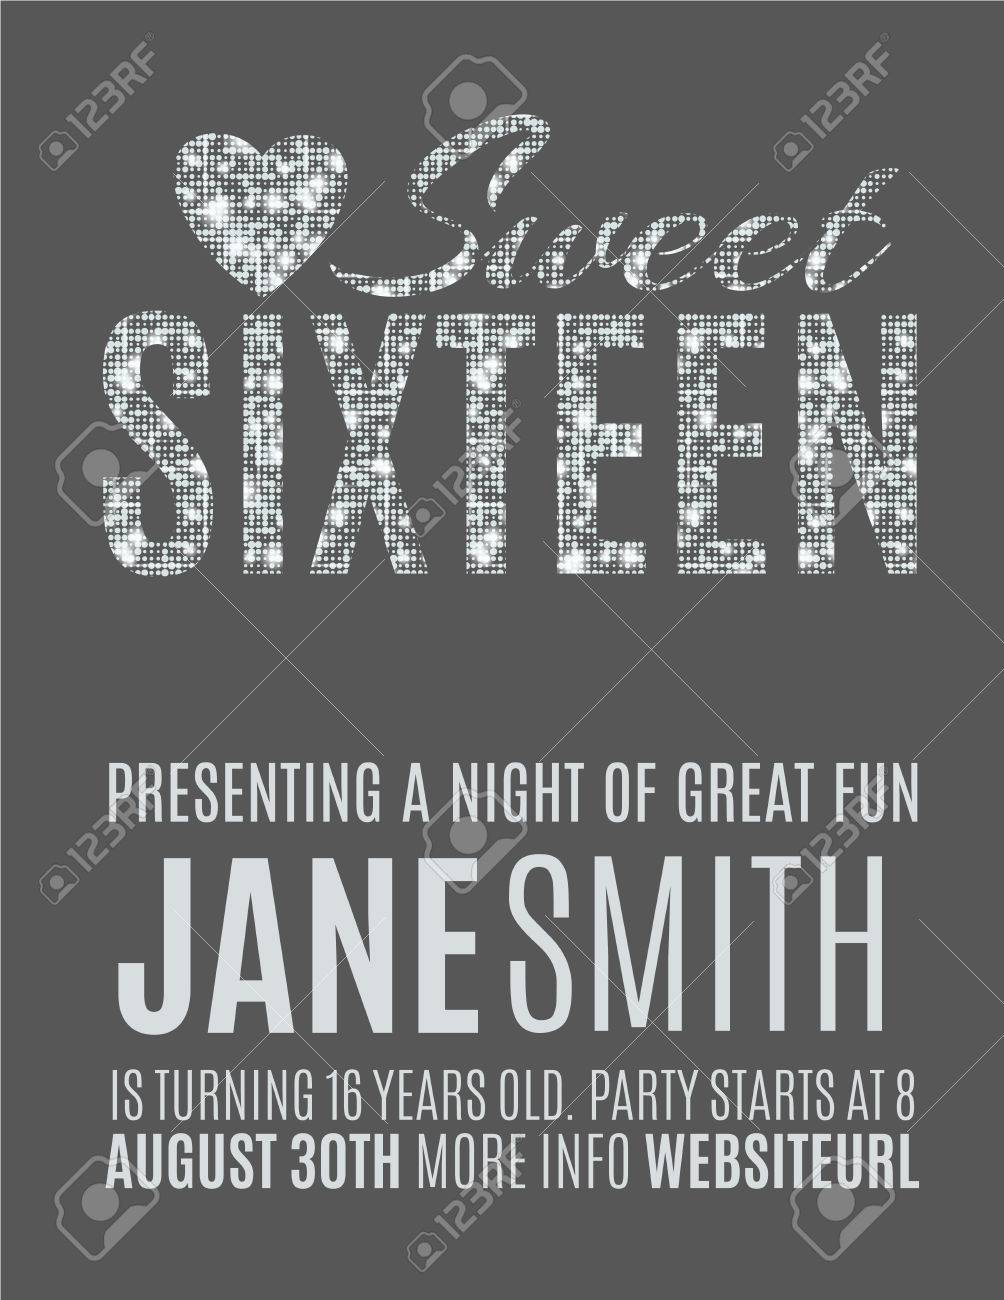 Sweet sixteen glitter party invitation flyer template design royalty sweet sixteen glitter party invitation flyer template design stock vector 35818353 stopboris Image collections